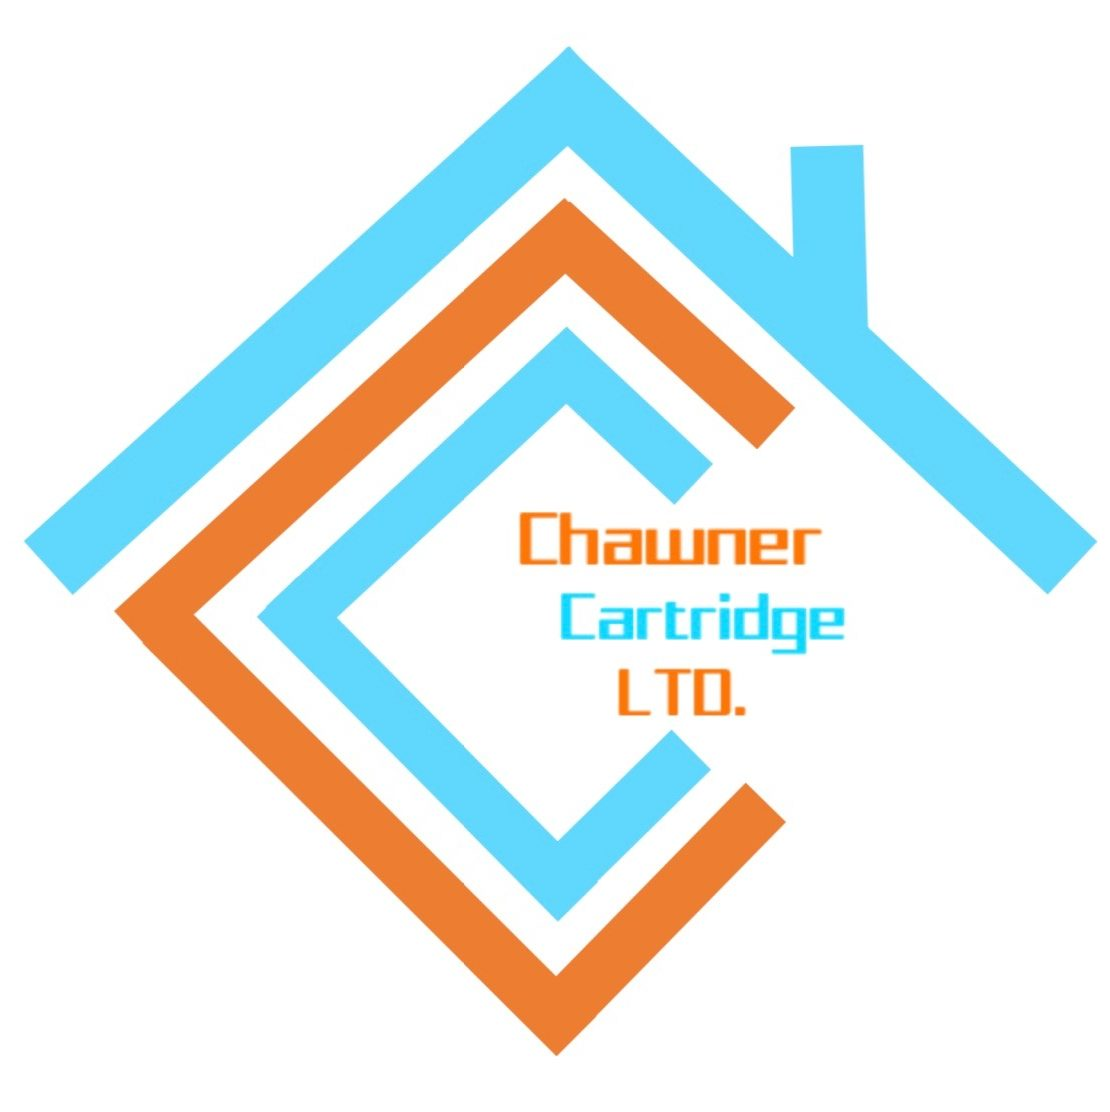 Chawner Cartridge LTD